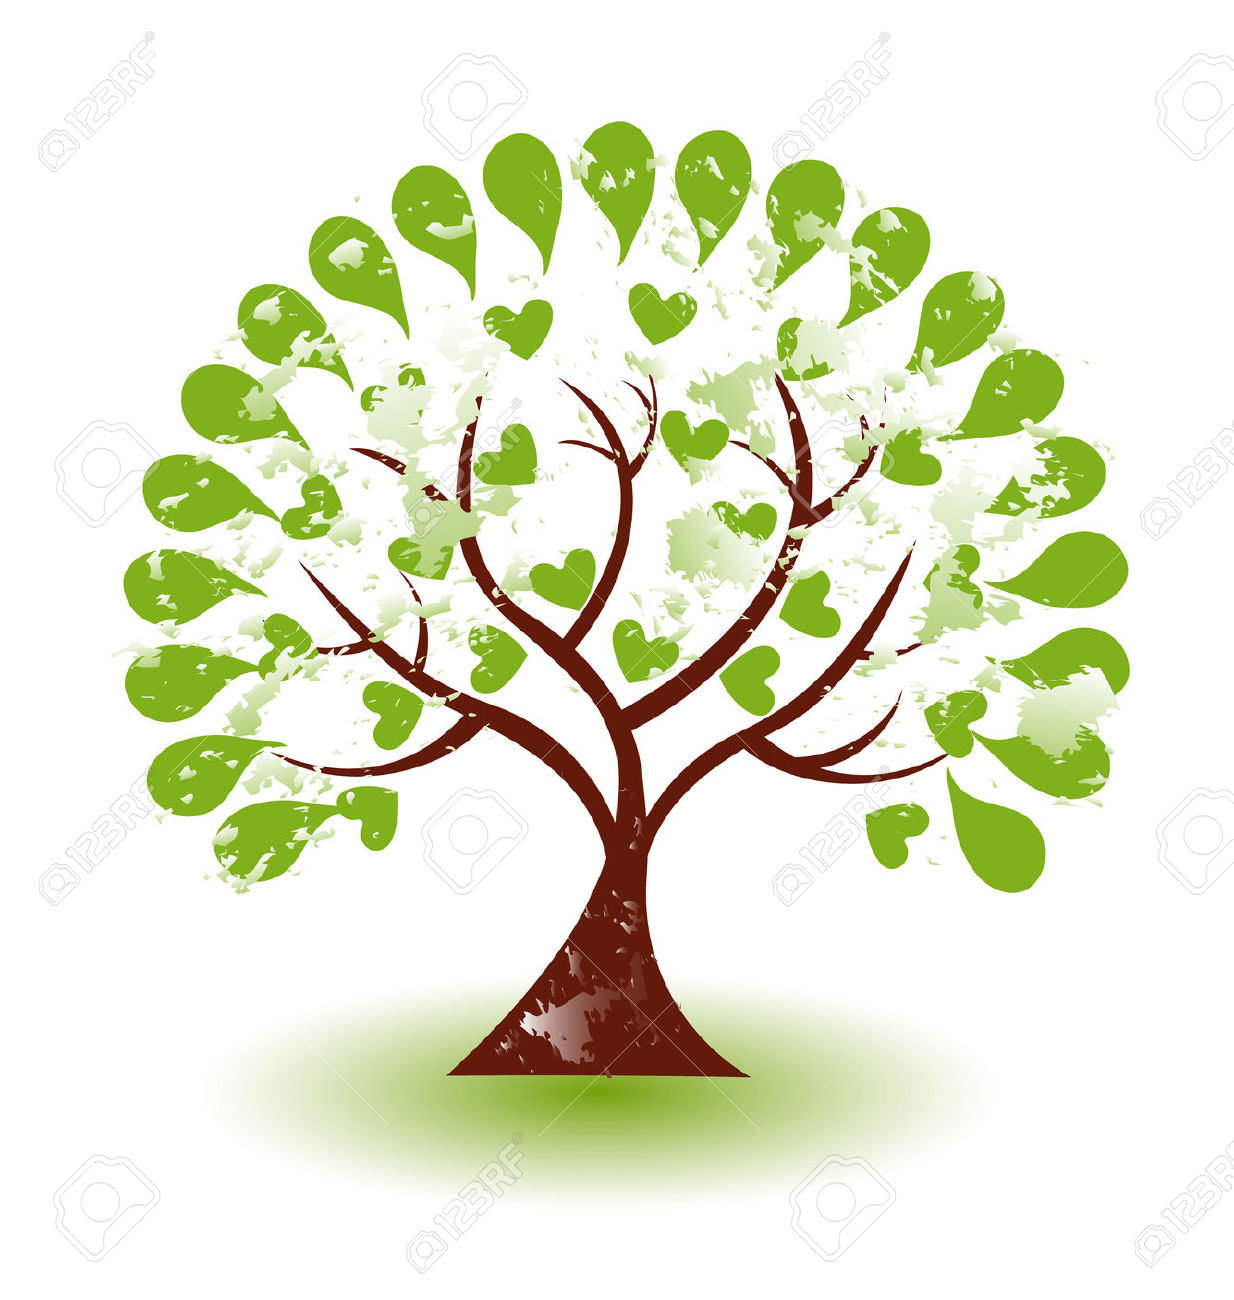 family tree silhouette vector at getdrawings com free for personal rh getdrawings com